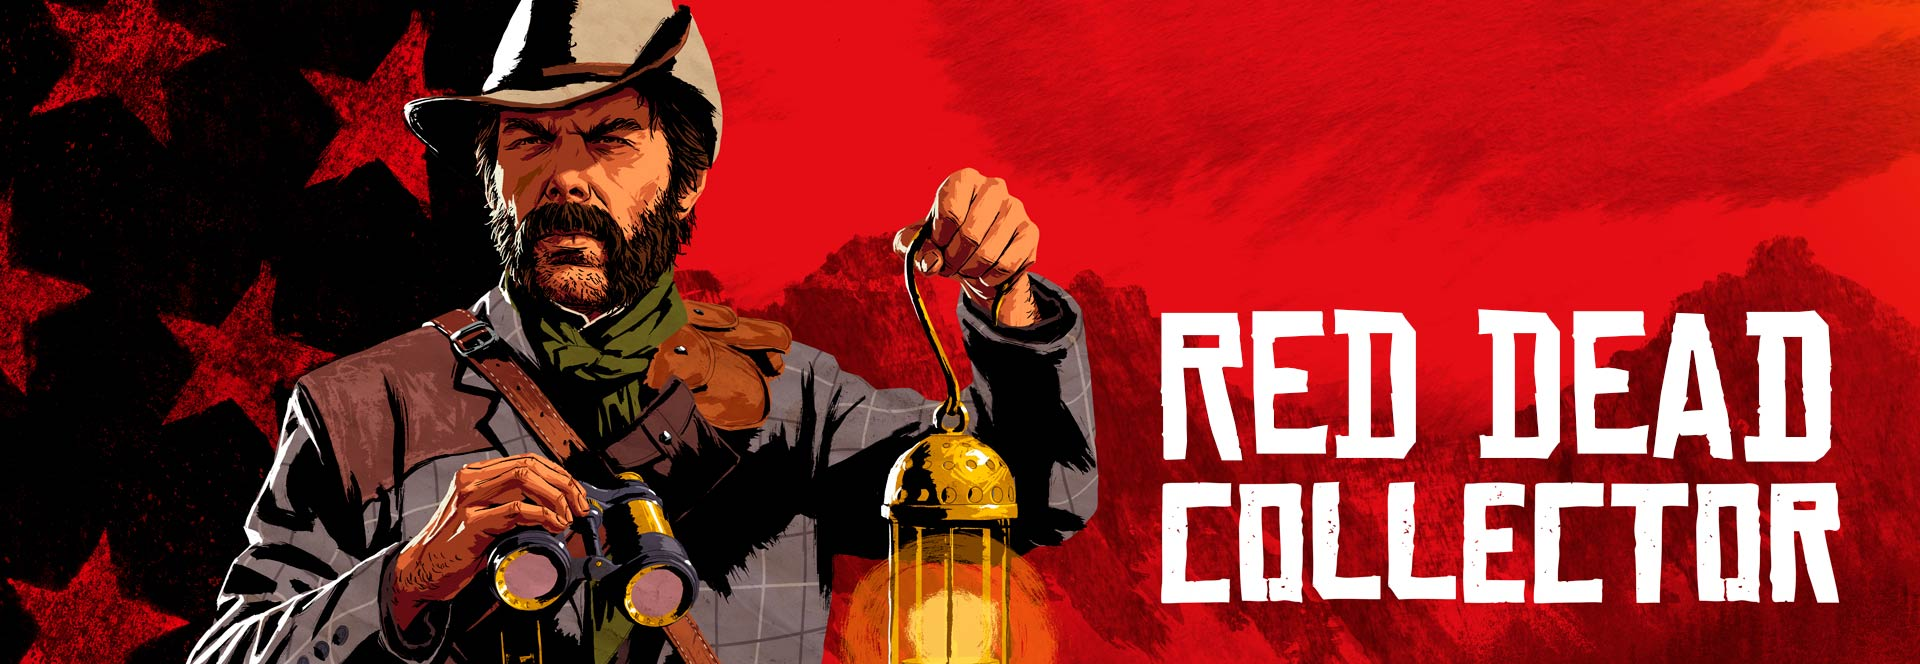 Red Dead Collector Banner